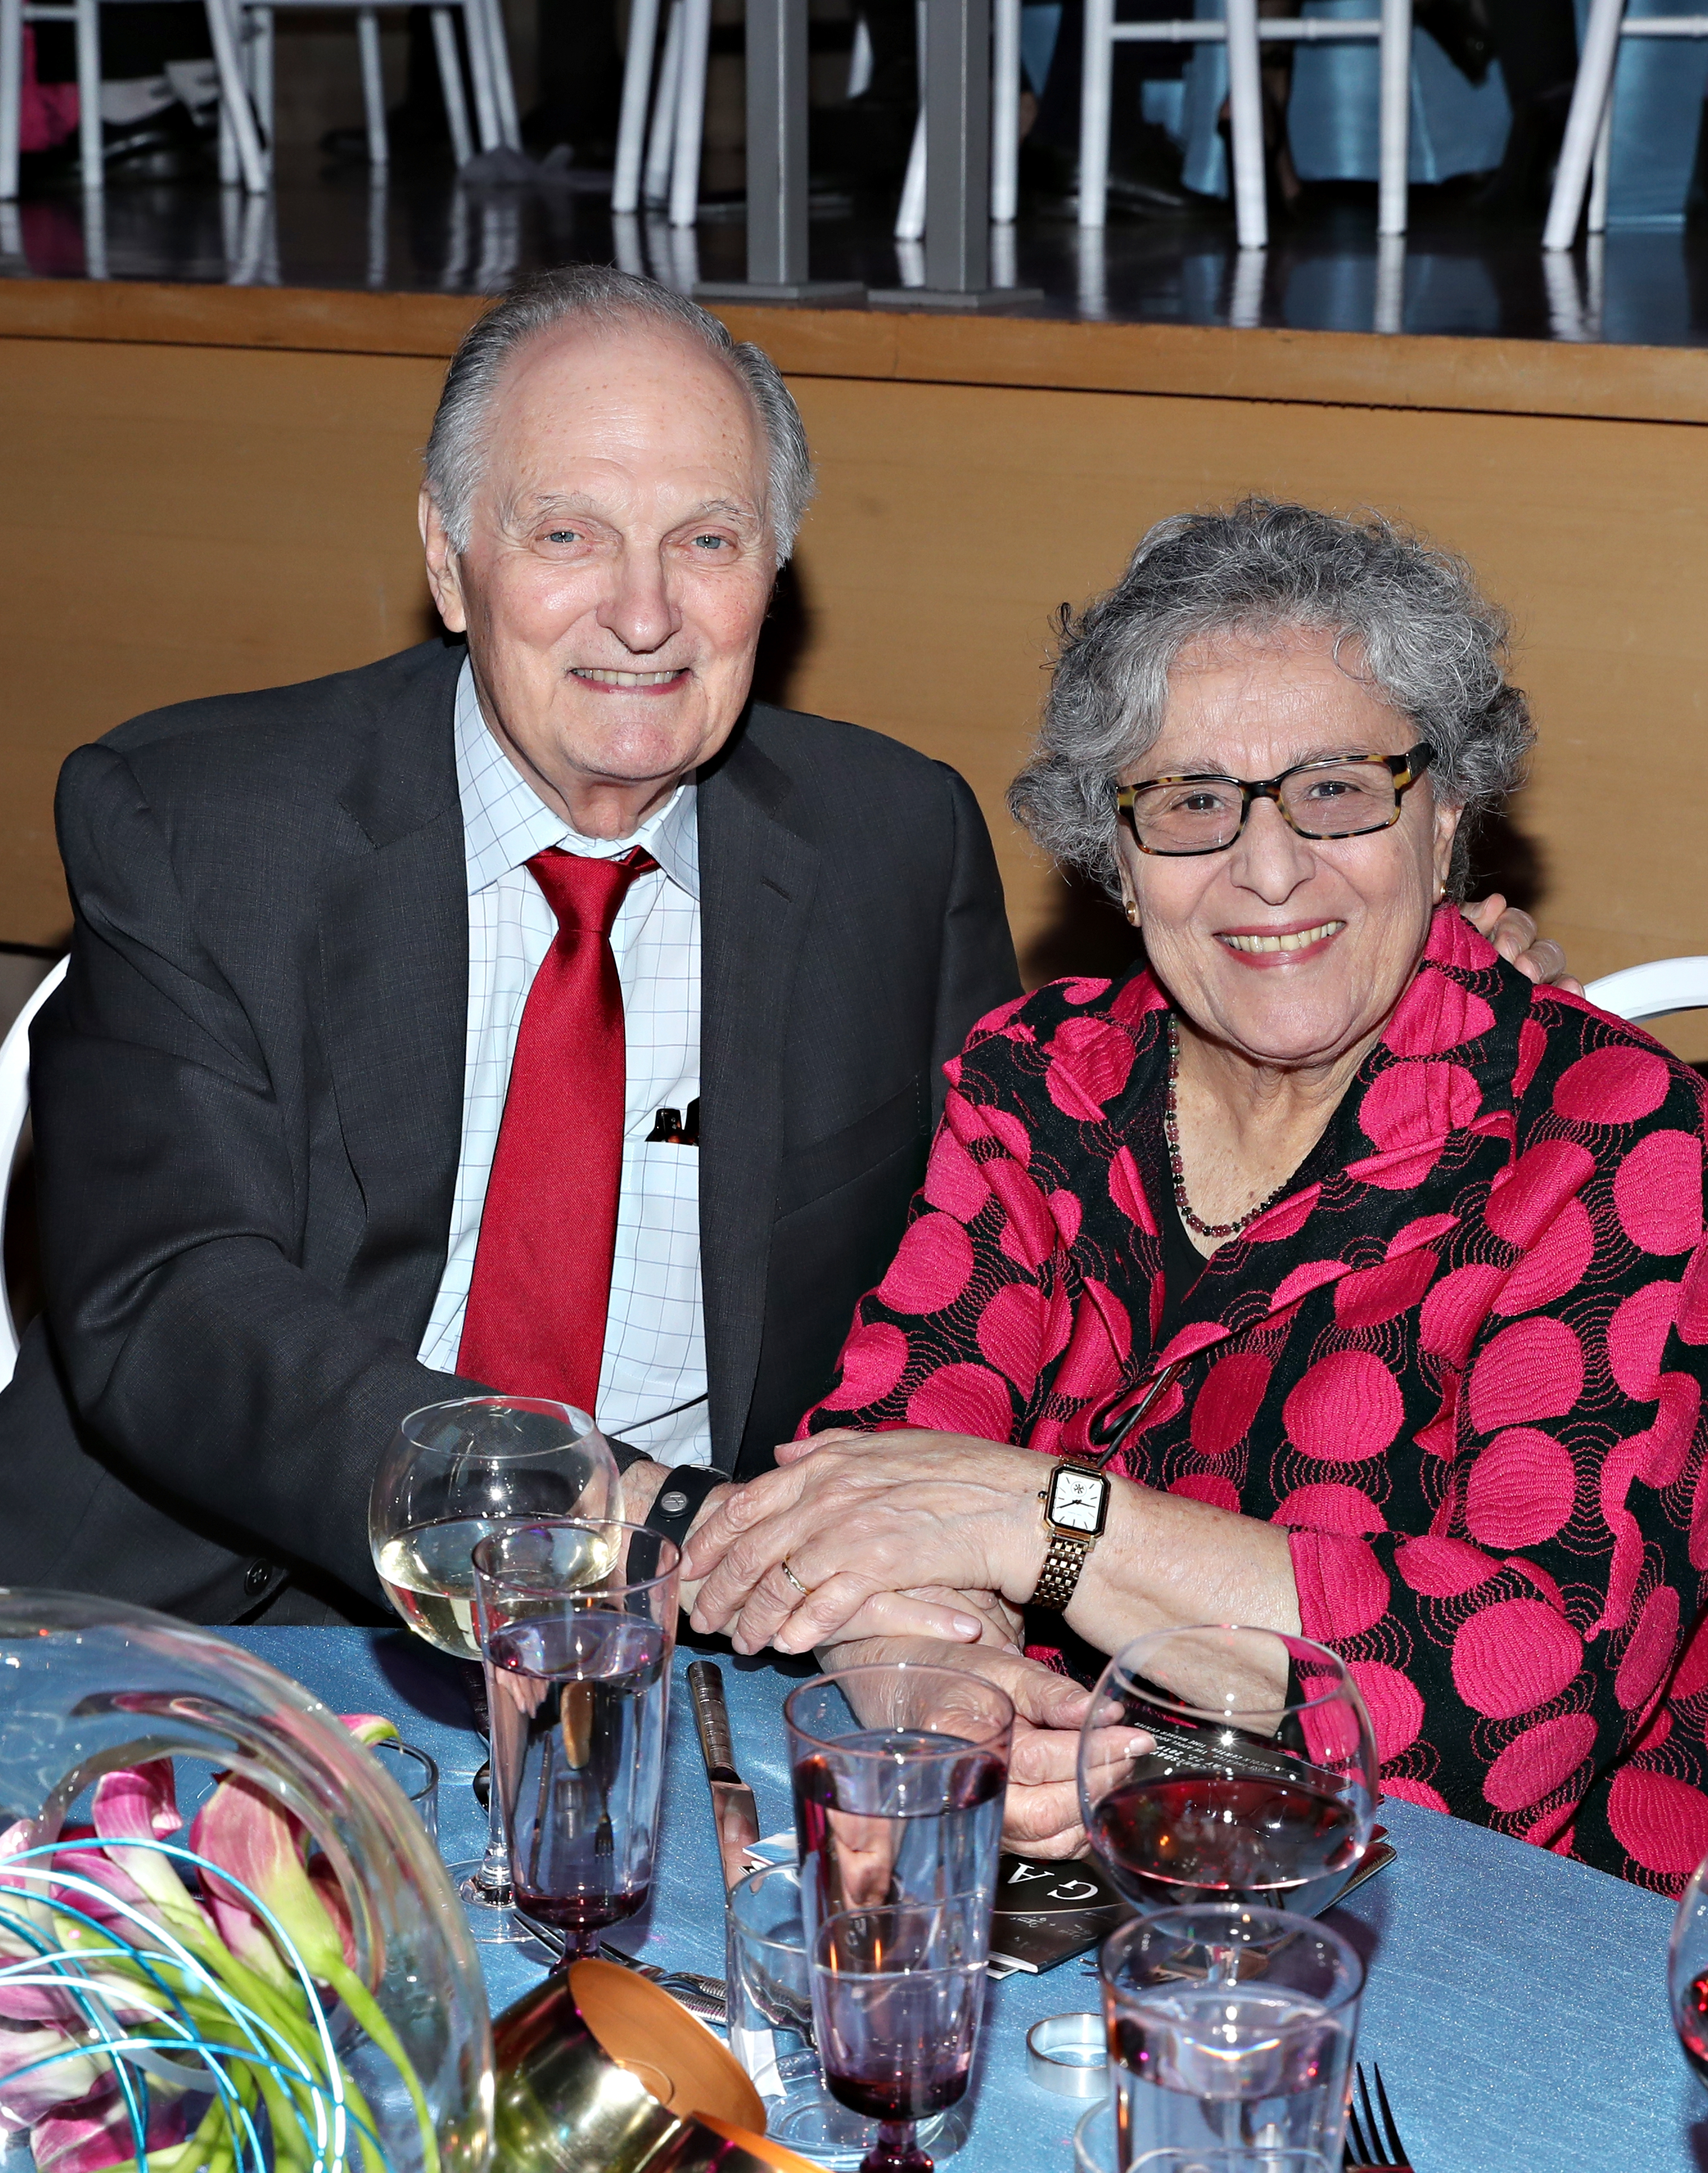 Alda and wife, Arlene. Image Credit: Getty Images